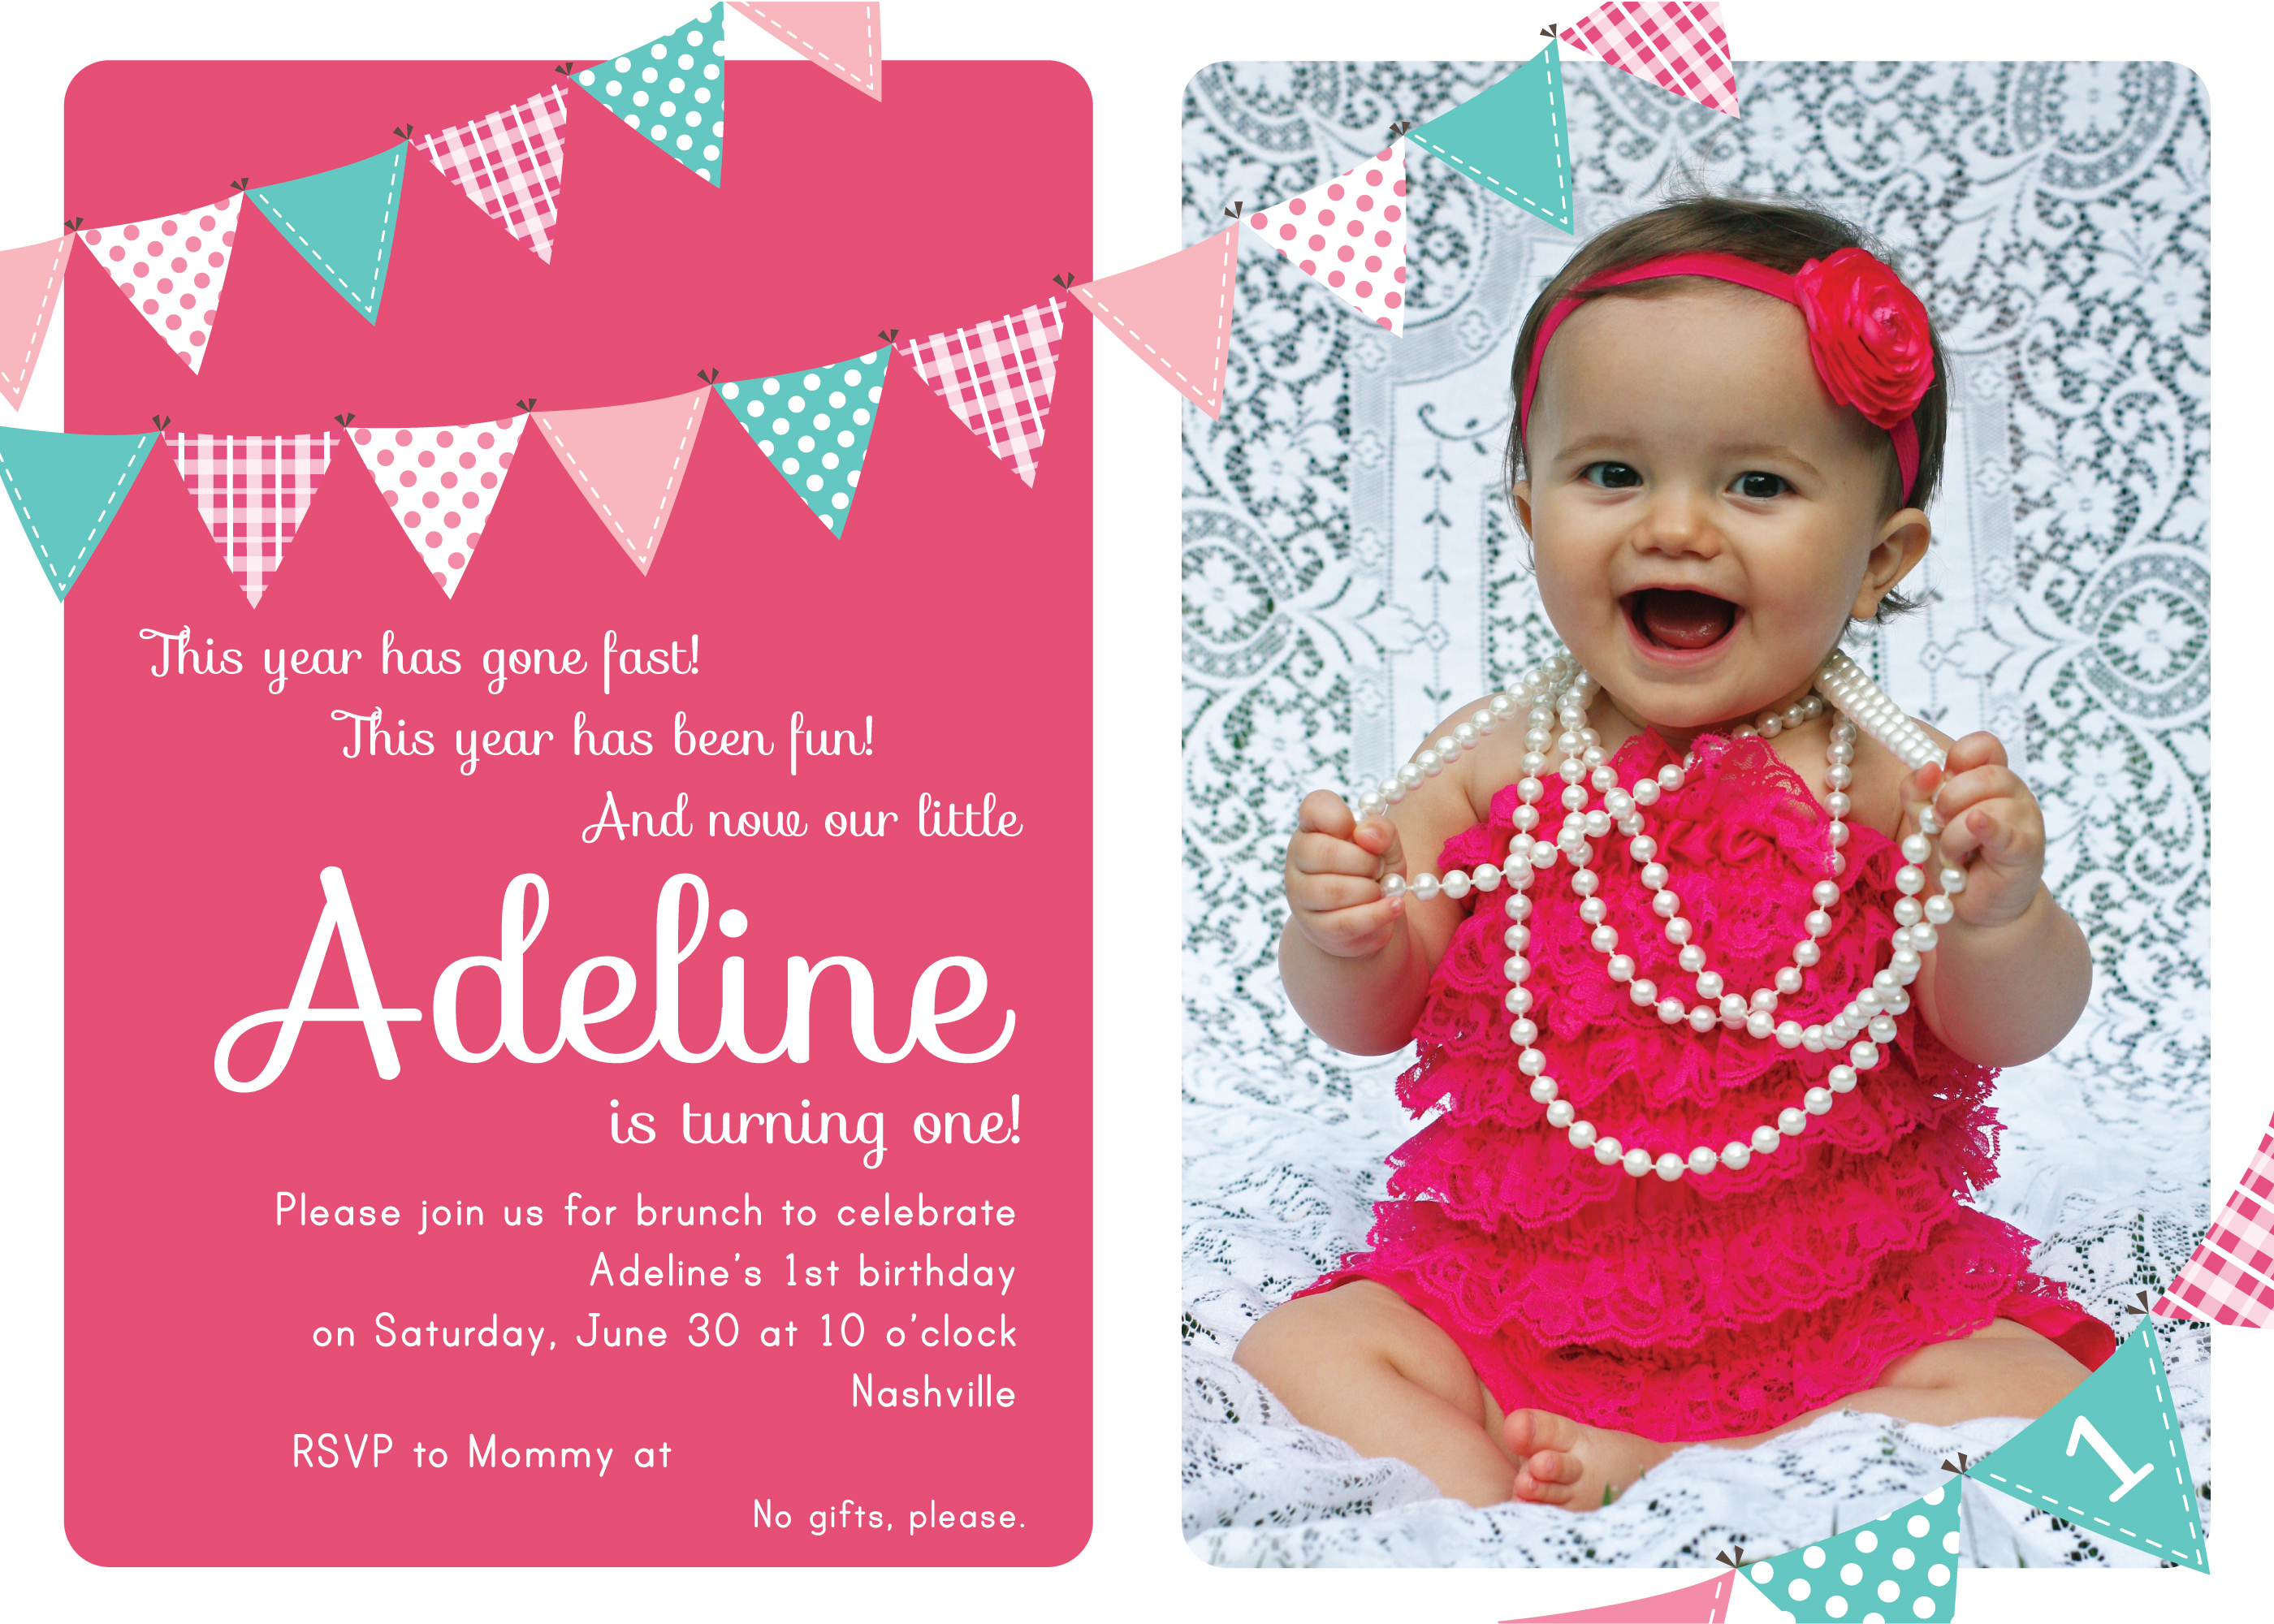 baby girl birthday invitation card design ; Baby-Girl-1St-Birthday-Invitations-to-get-ideas-how-to-make-your-own-birthday-Invitation-design-1